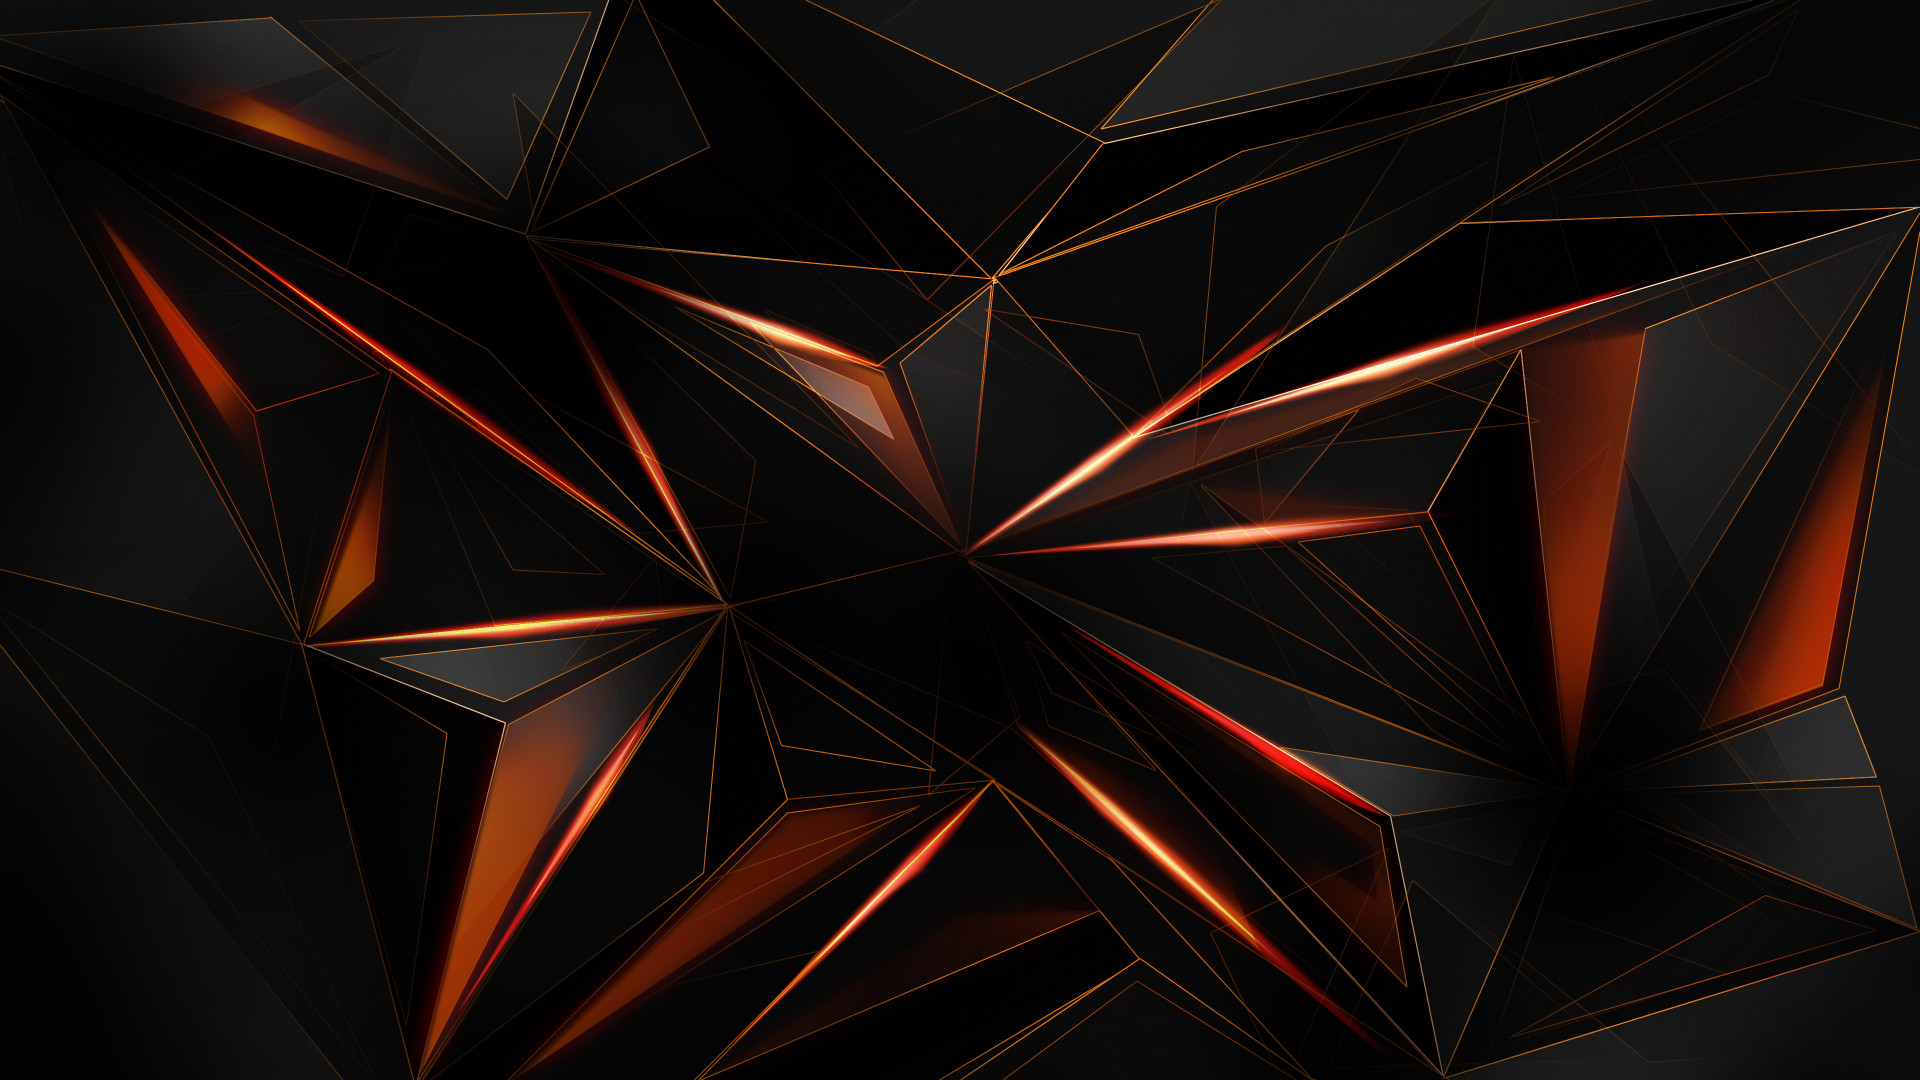 4k Abstract Wallpaper 46 Images